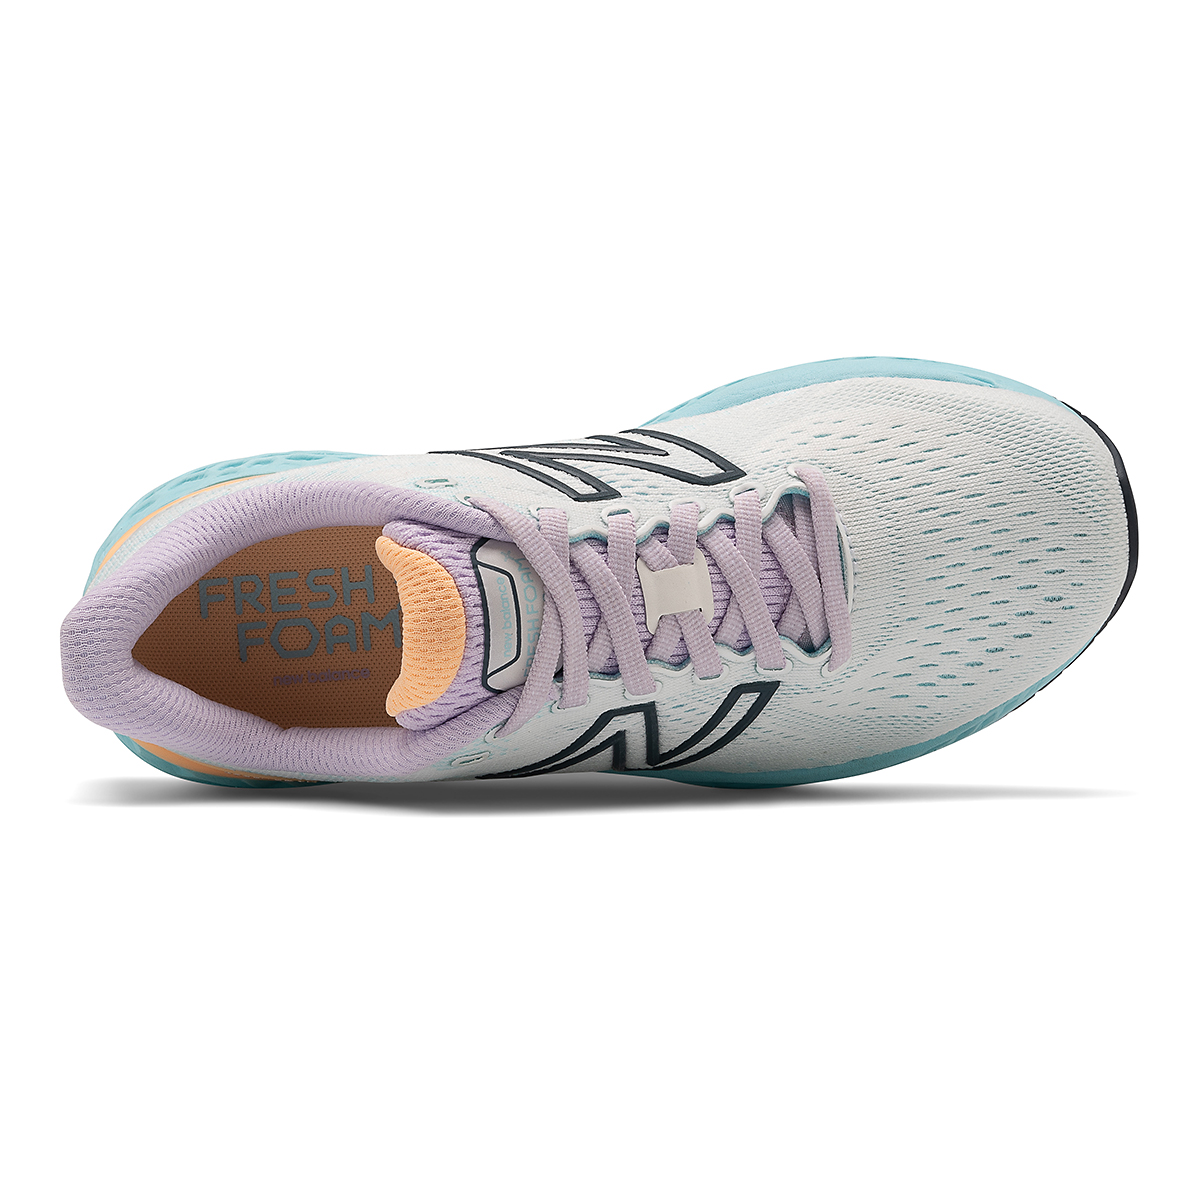 Women's New Balance 880V11 Running Shoe - Color: White/Blue Chill - Size: 5 - Width: Narrow, White/Blue Chill, large, image 4